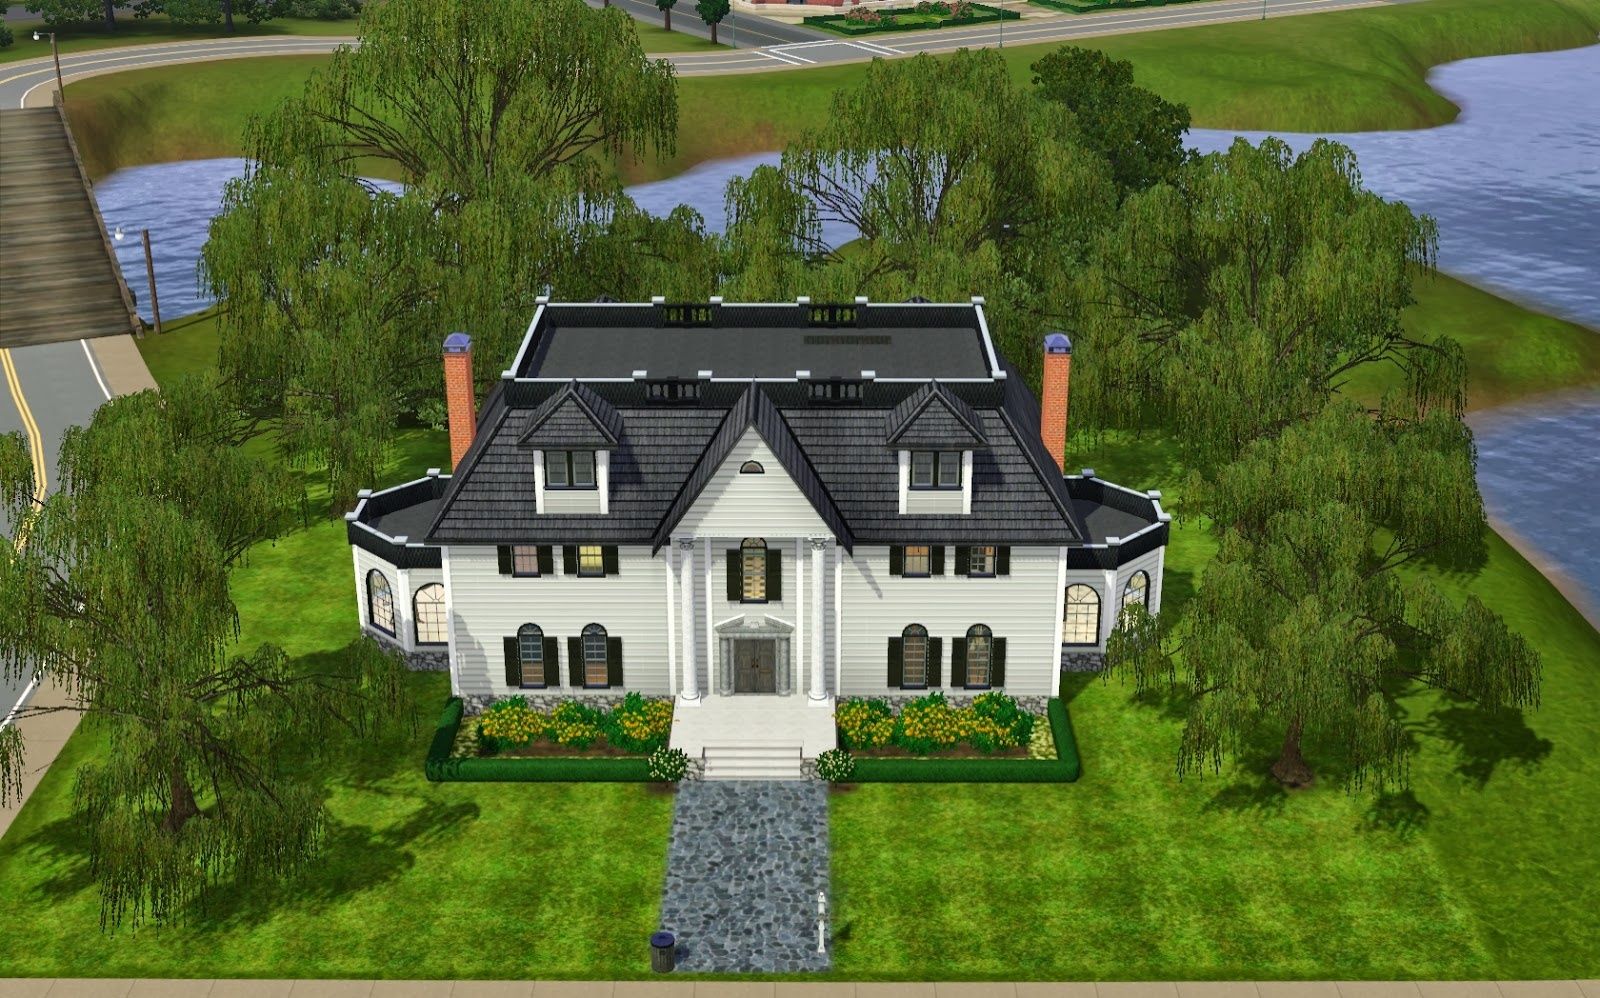 Sims 3 Mansion Floor Plans Summer S Little Sims 3 Garden Twinbrook The Sims 3